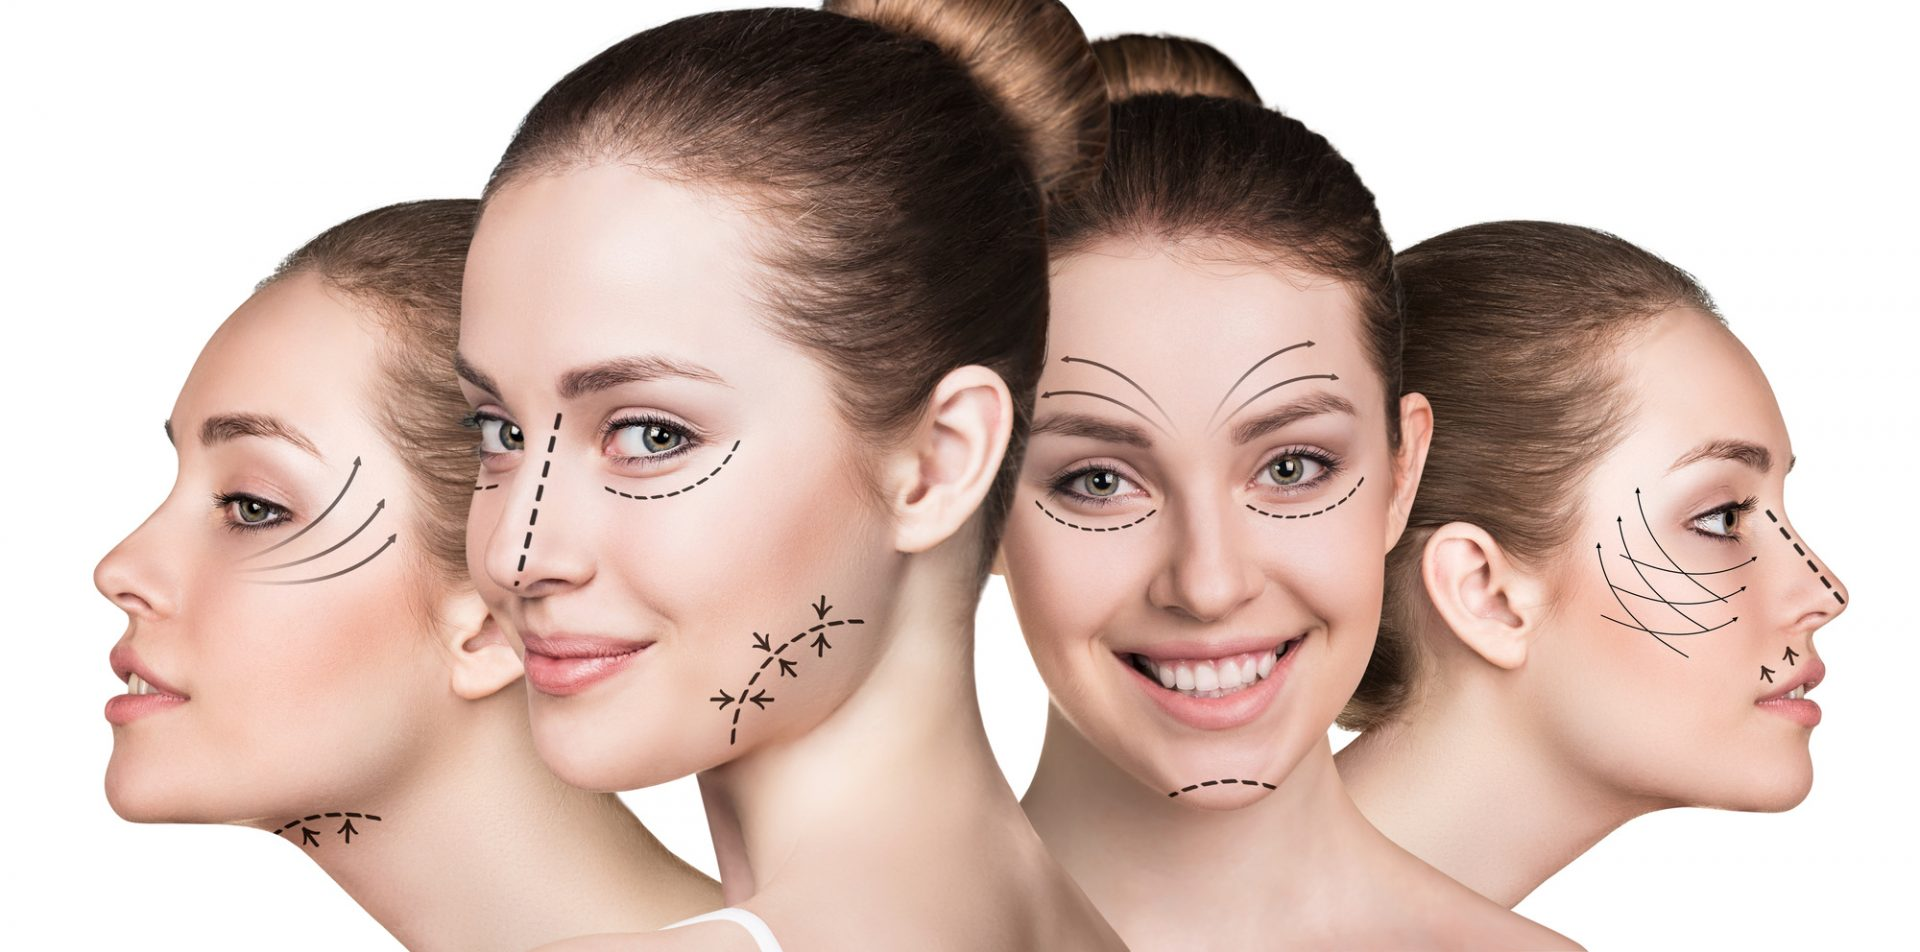 Brisbane Cosmetic Surgery: What Are Cosmetic Injectables?